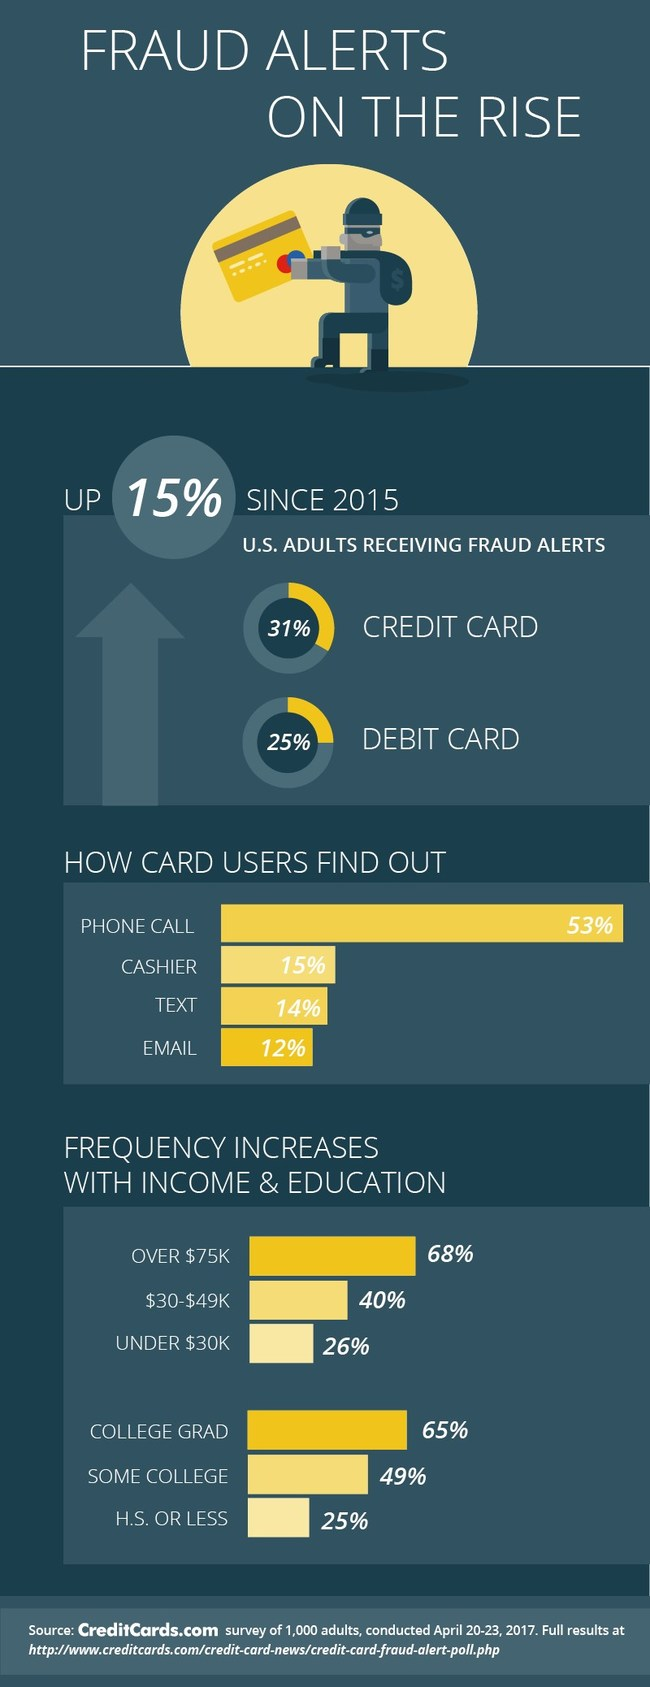 Credit and debit card fraud alerts are up 15% from two years ago, according to a new CreditCards.com report.